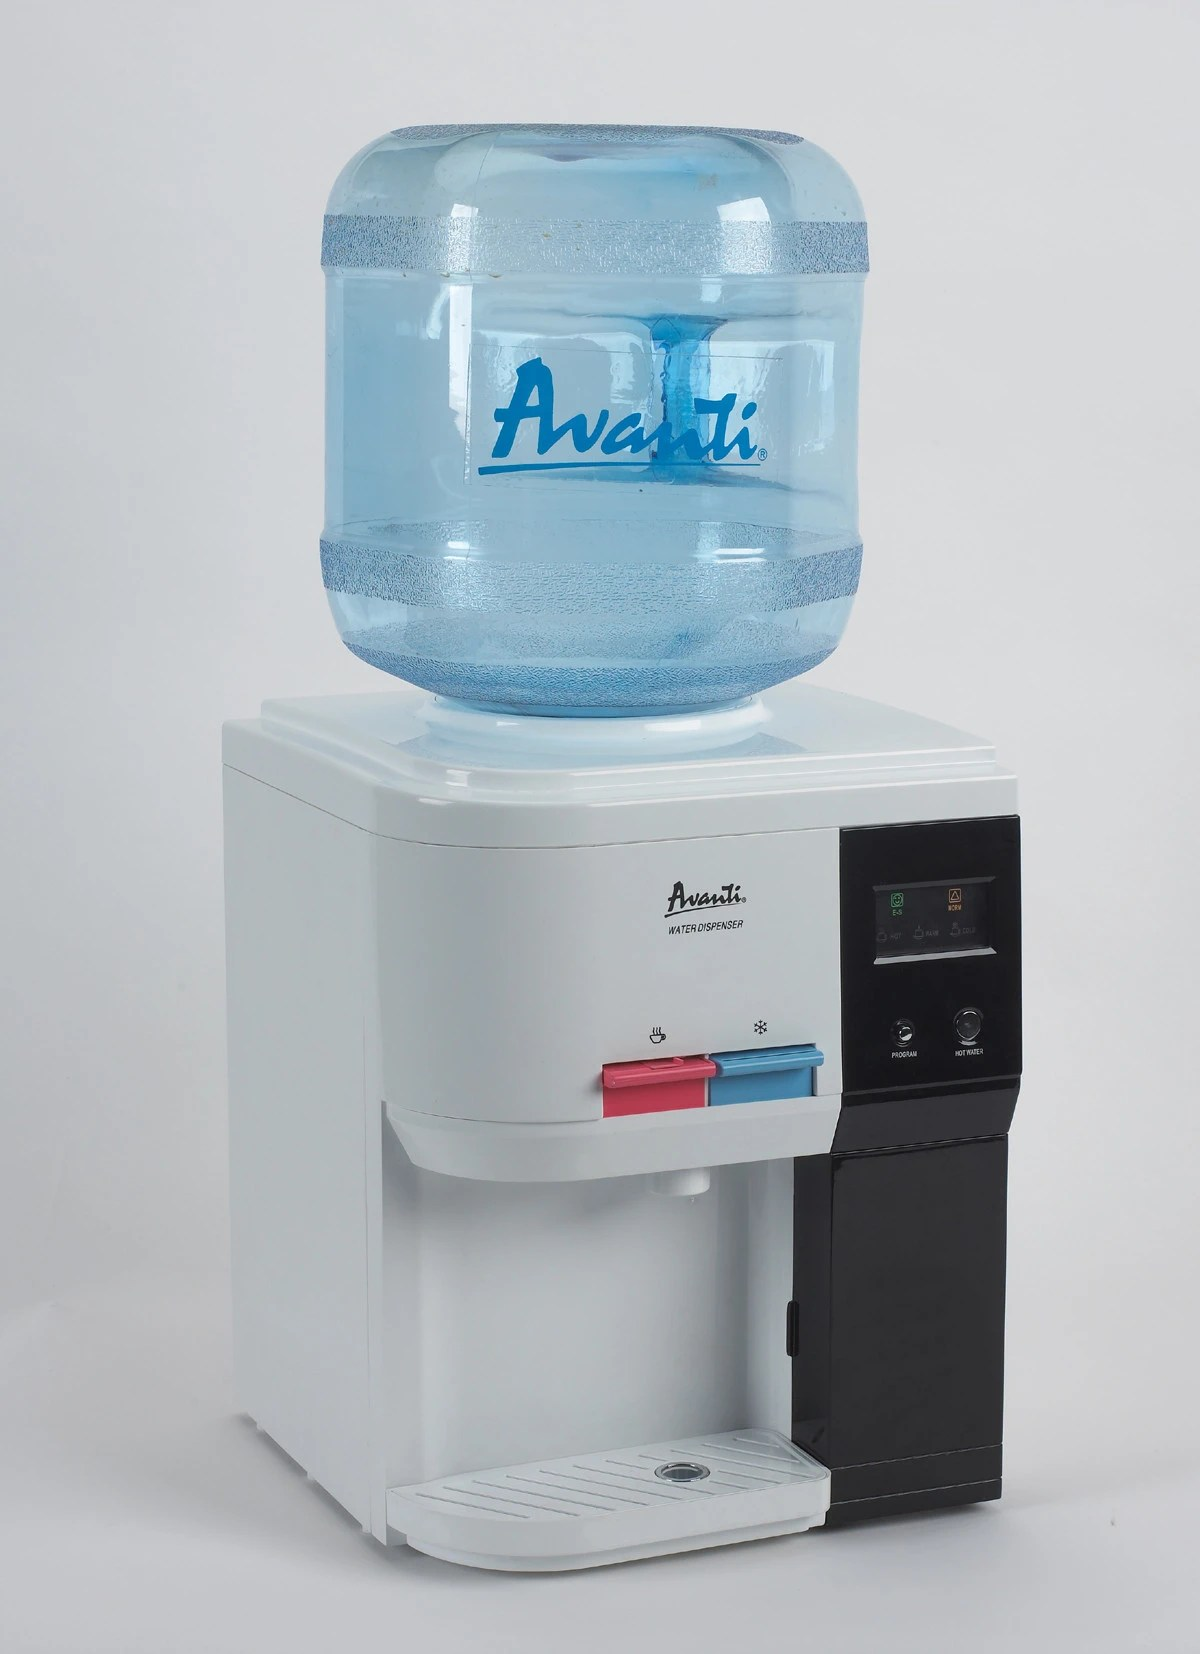 Best Countertop Water Cooler Avanti Wd31ec 13 Inch Table Top Water Cooler For 2-, 3- Or